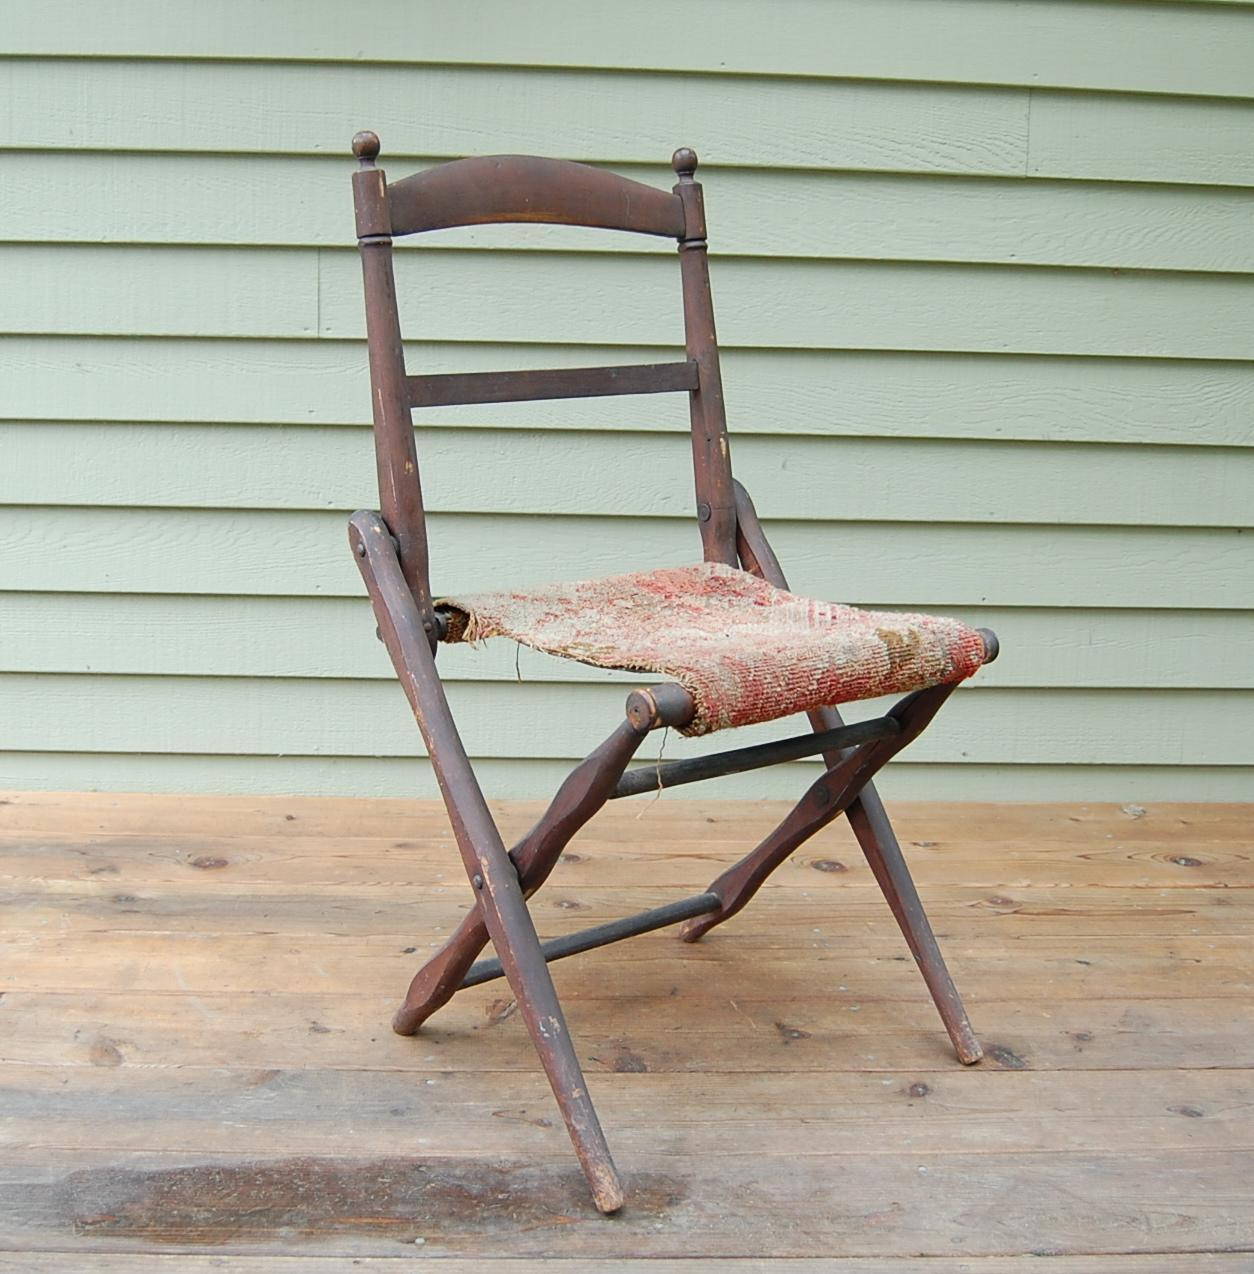 wood camp chair pc gaming chairs antique folding wooden civil war era from